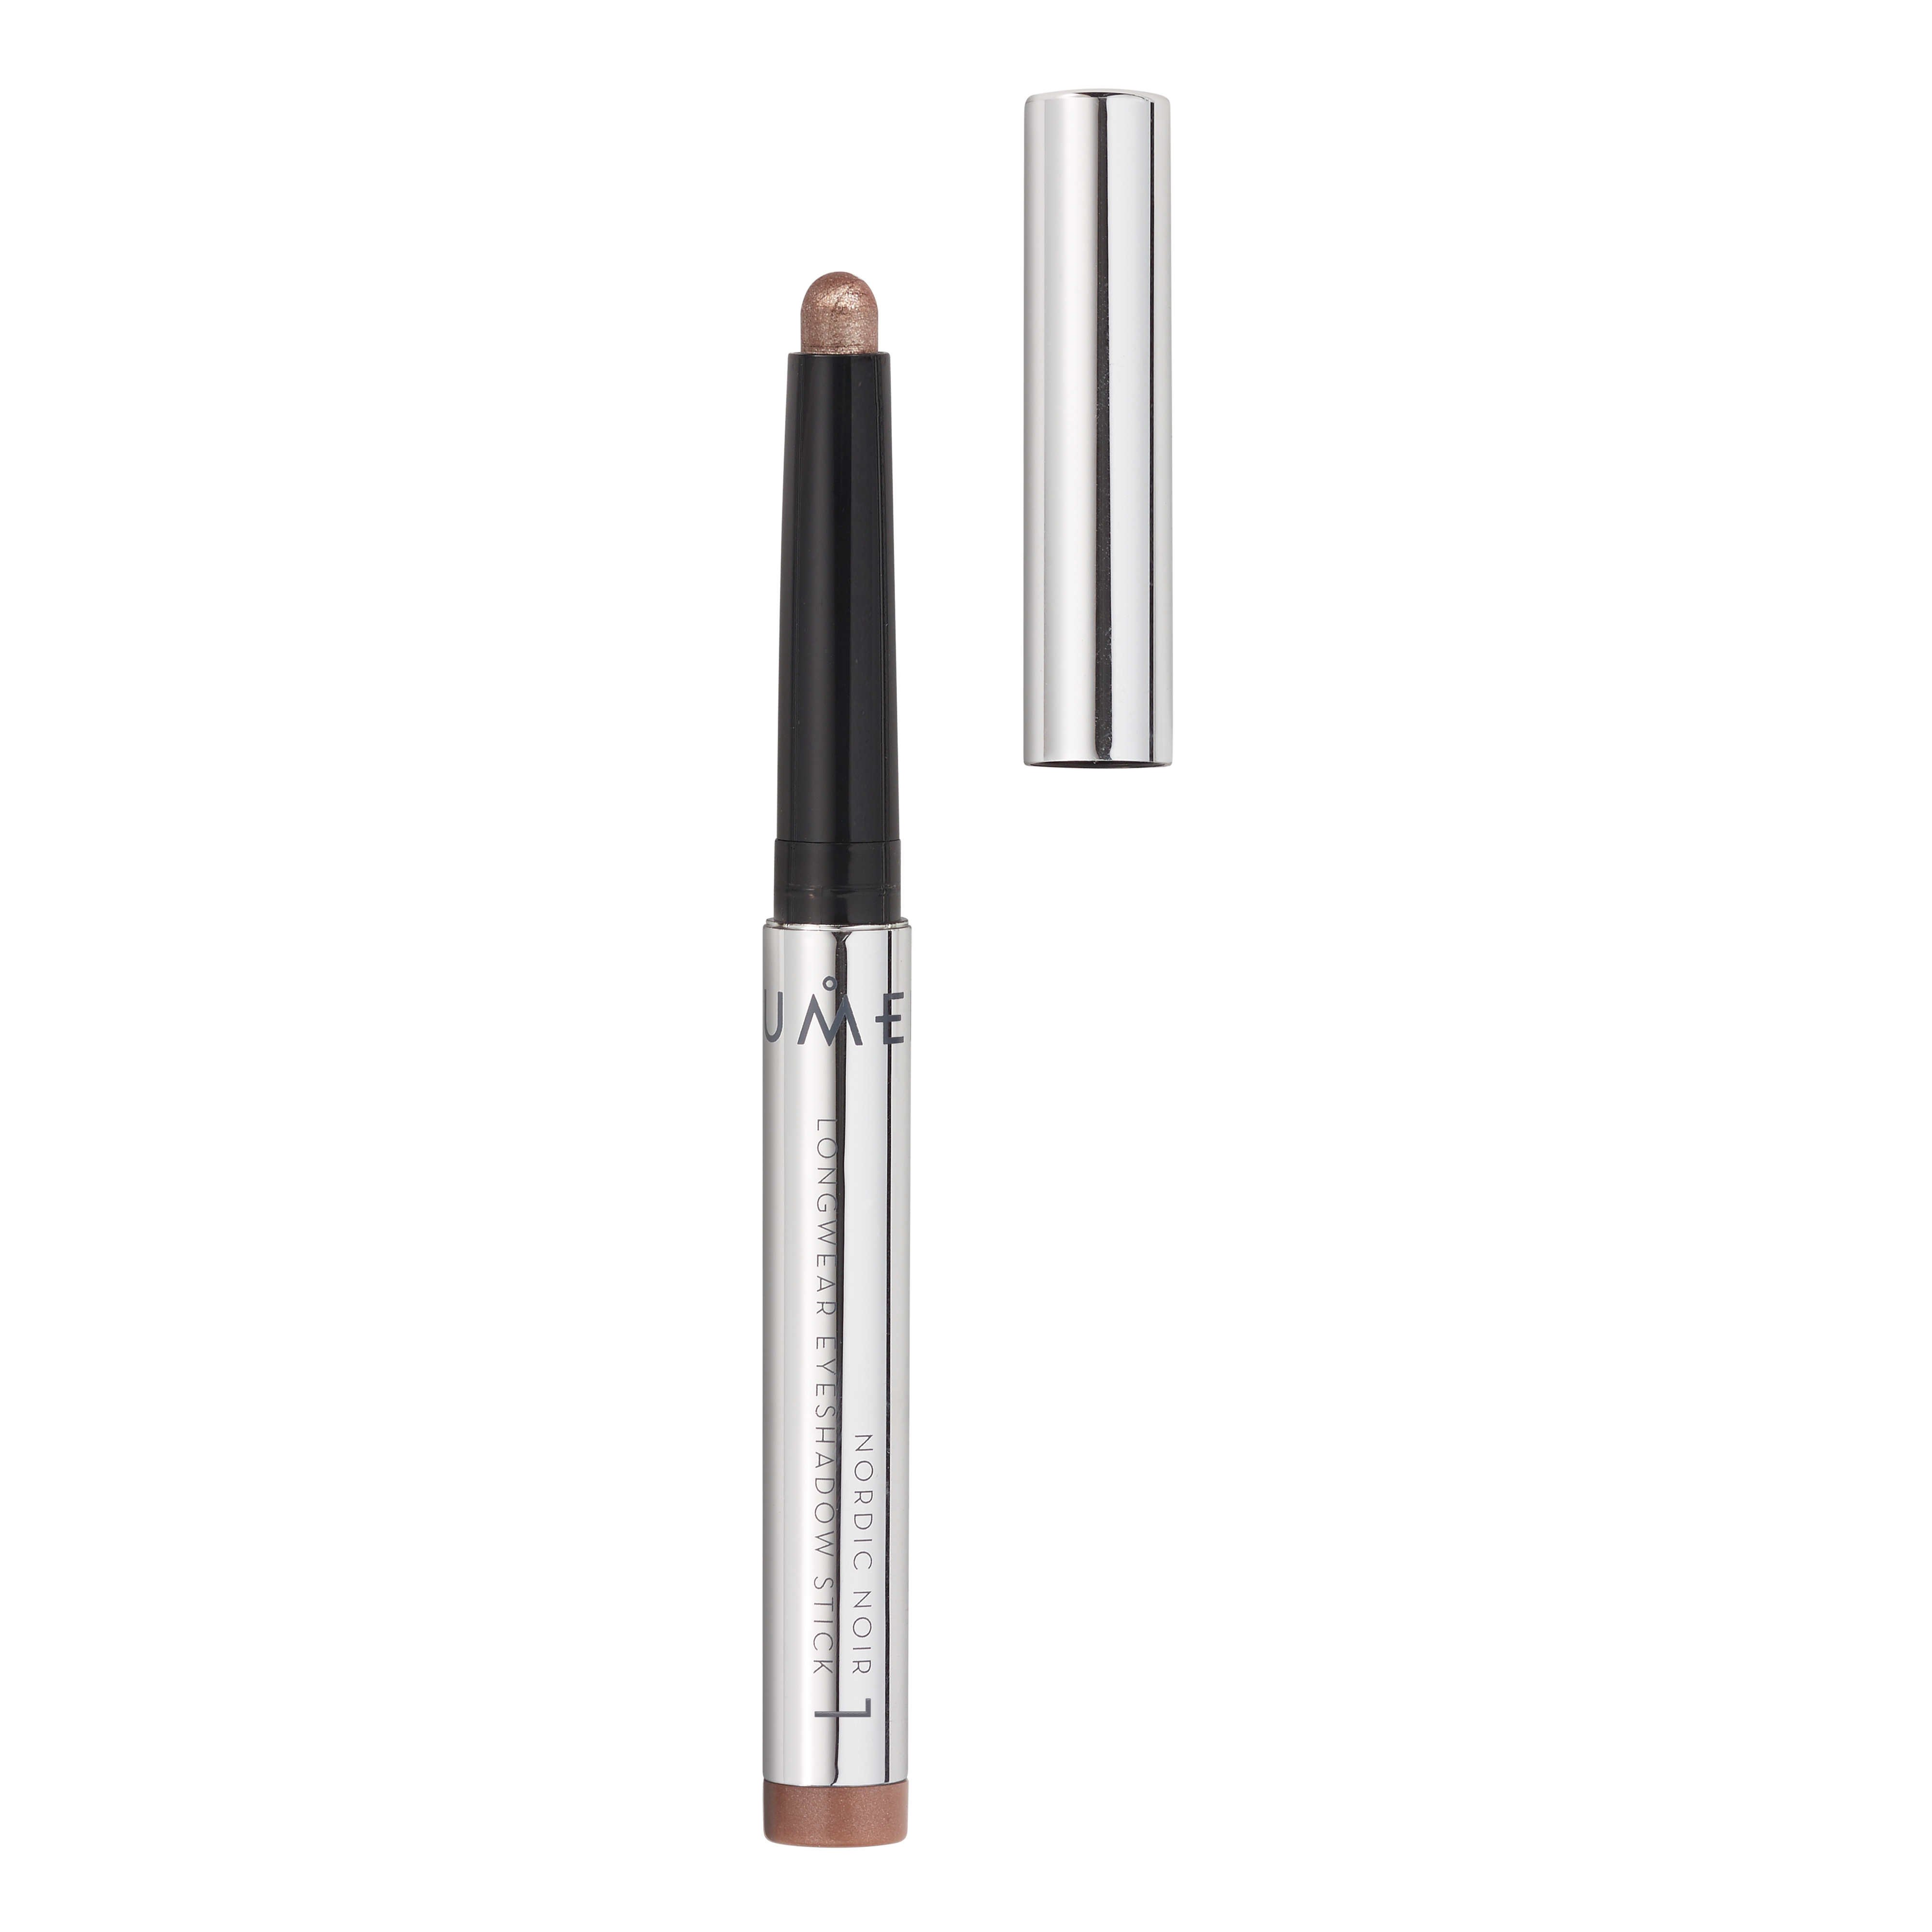 Nordic Noir Longwear Eyeshadow Stick 1 Midsummer Brown